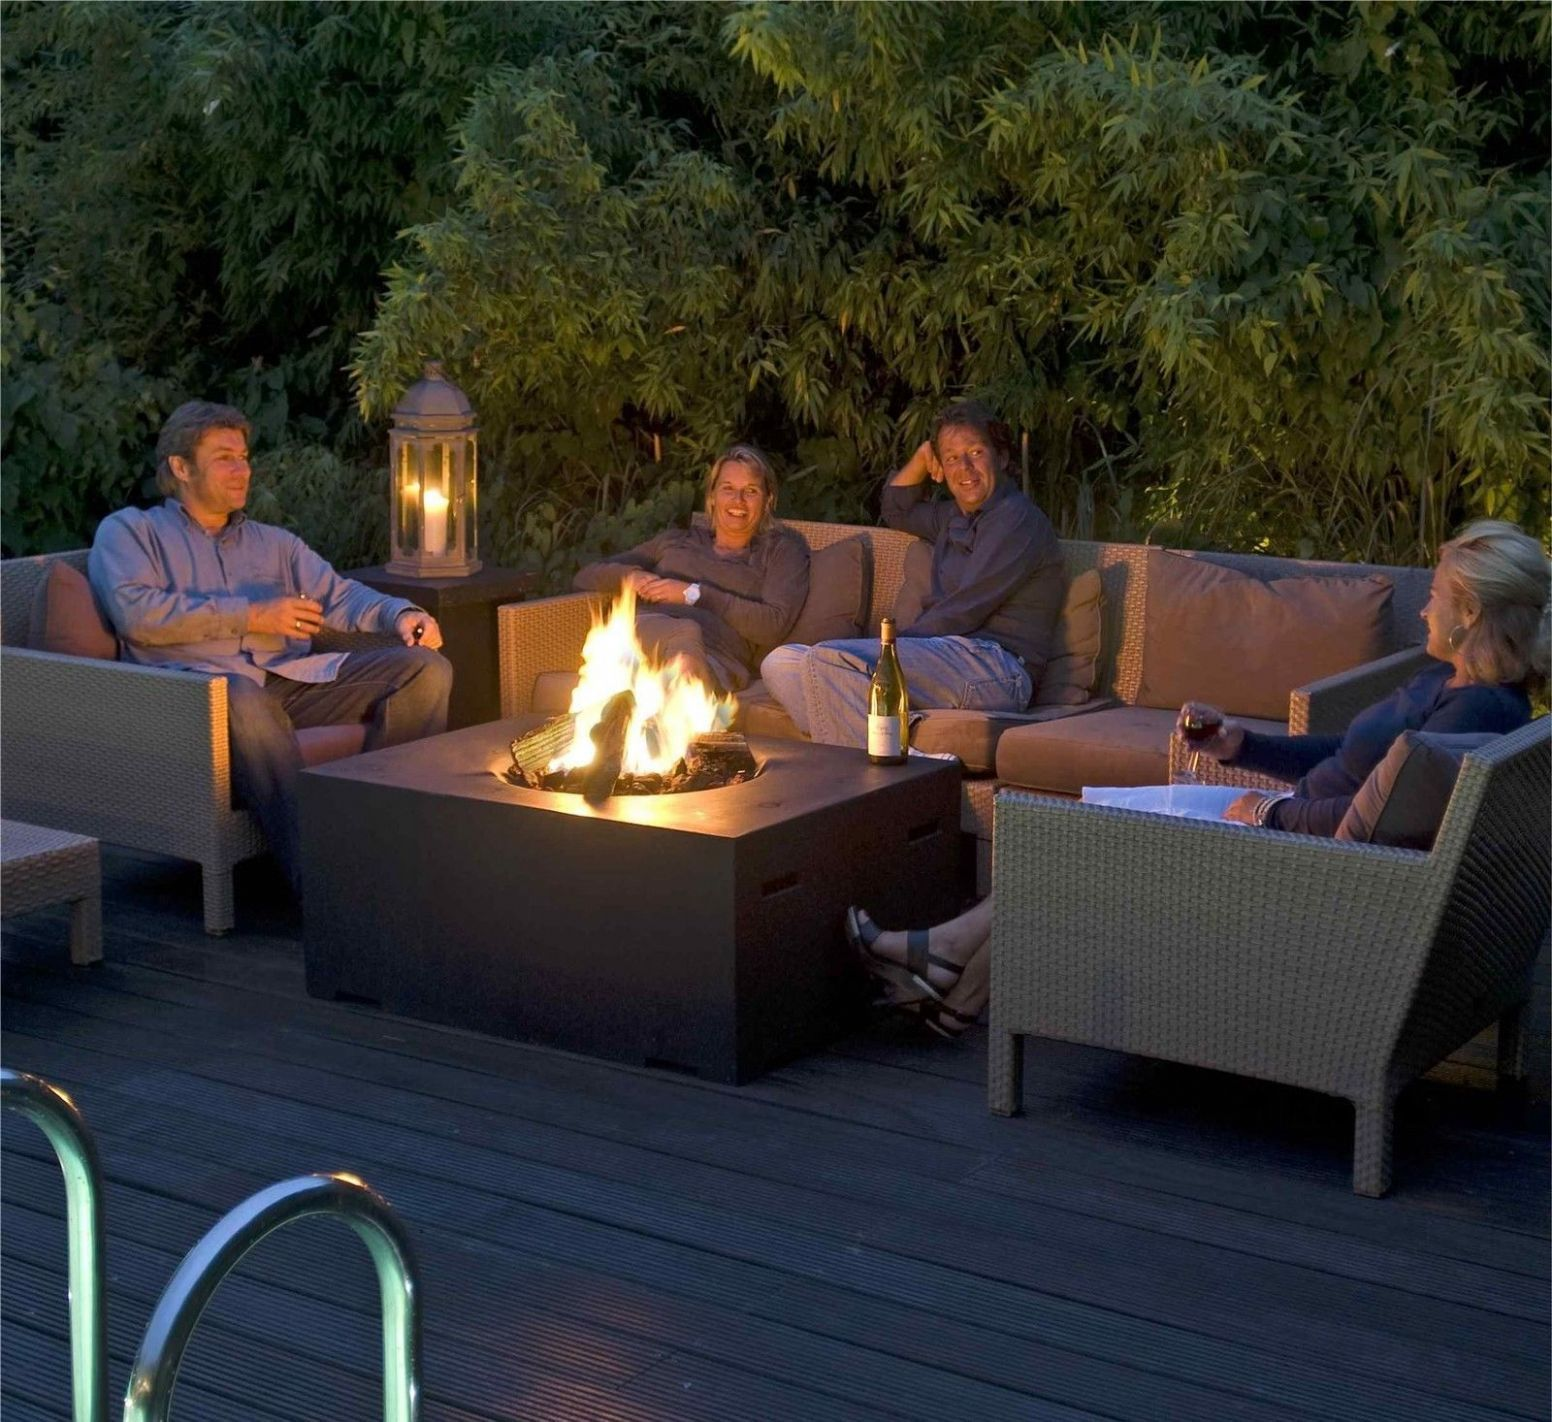 Garden Furniture With Fire Pit Uk pinsarah nicklin on outdoor eating area | pinterest | fire pit